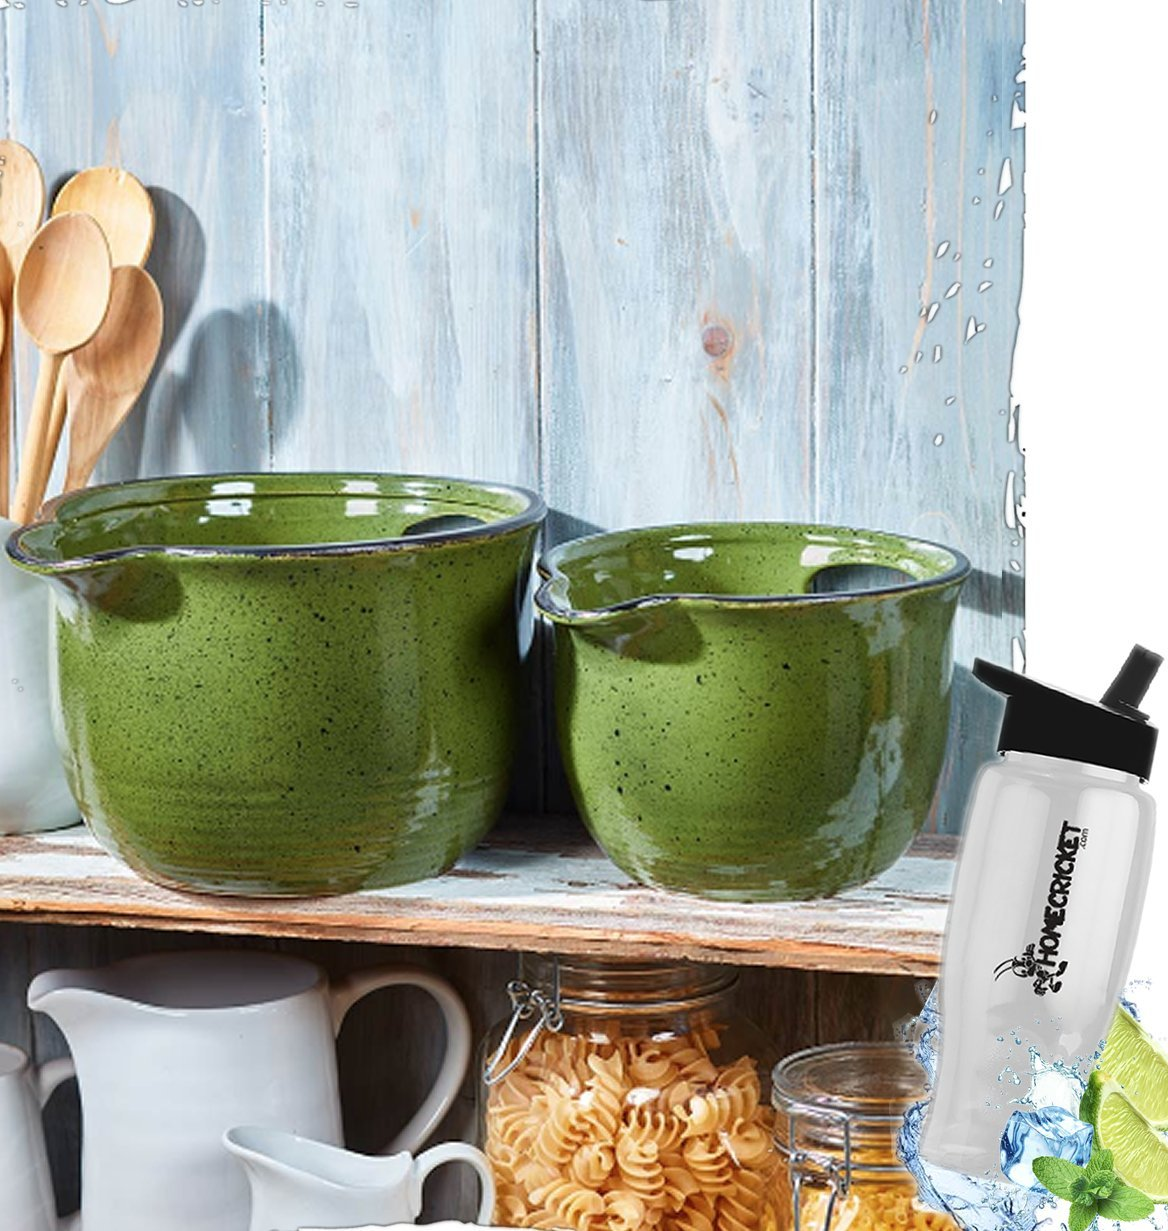 Gift Included- Country Farmhouse Kitchen Oversized Mixing Bowls Set of 2 Green + FREE Bonus Water Bottle by Home Cricket Homecricket